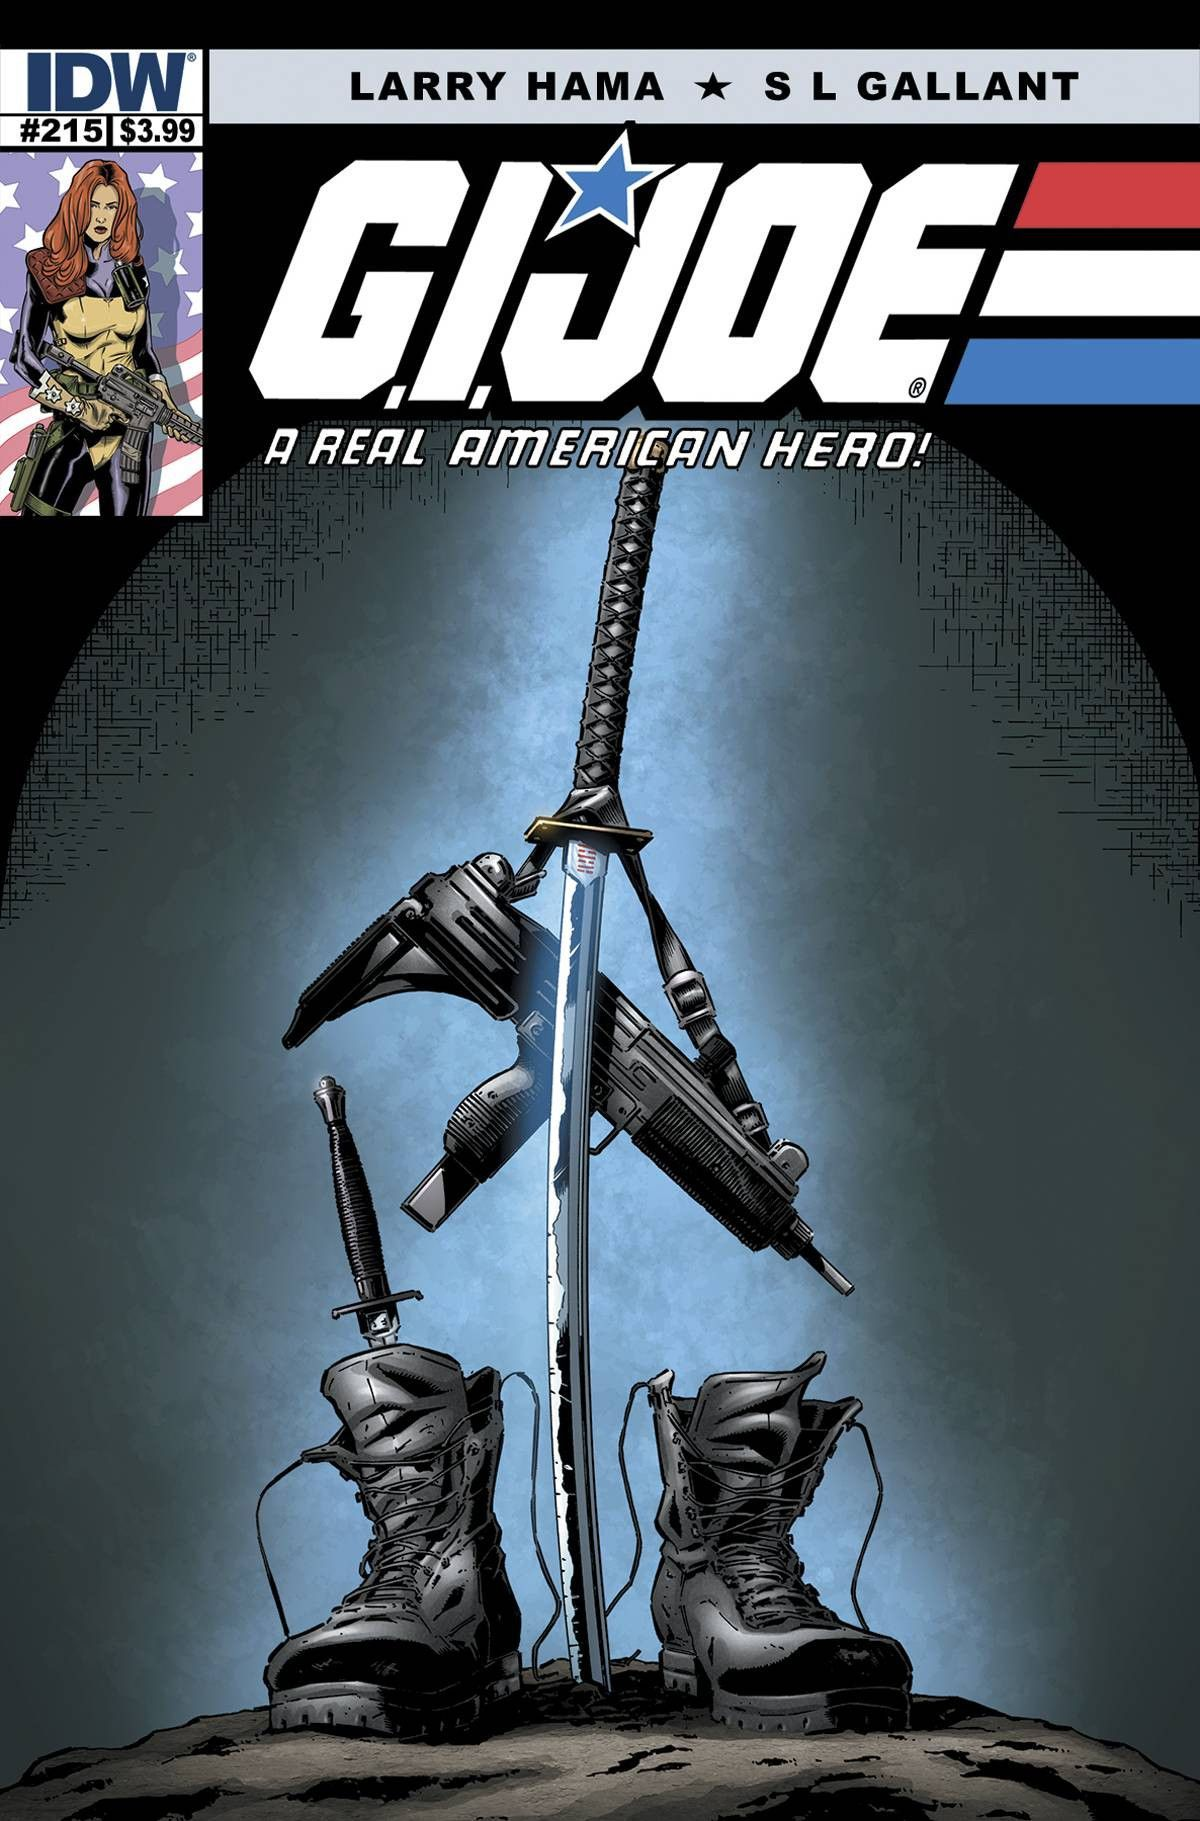 """""""The Death of Snake Eyes,"""" Part 4. As a hero falls, a new one must rise to take his place. G.I. JOE mourns Snake Eyes and prepares for what comes next..."""